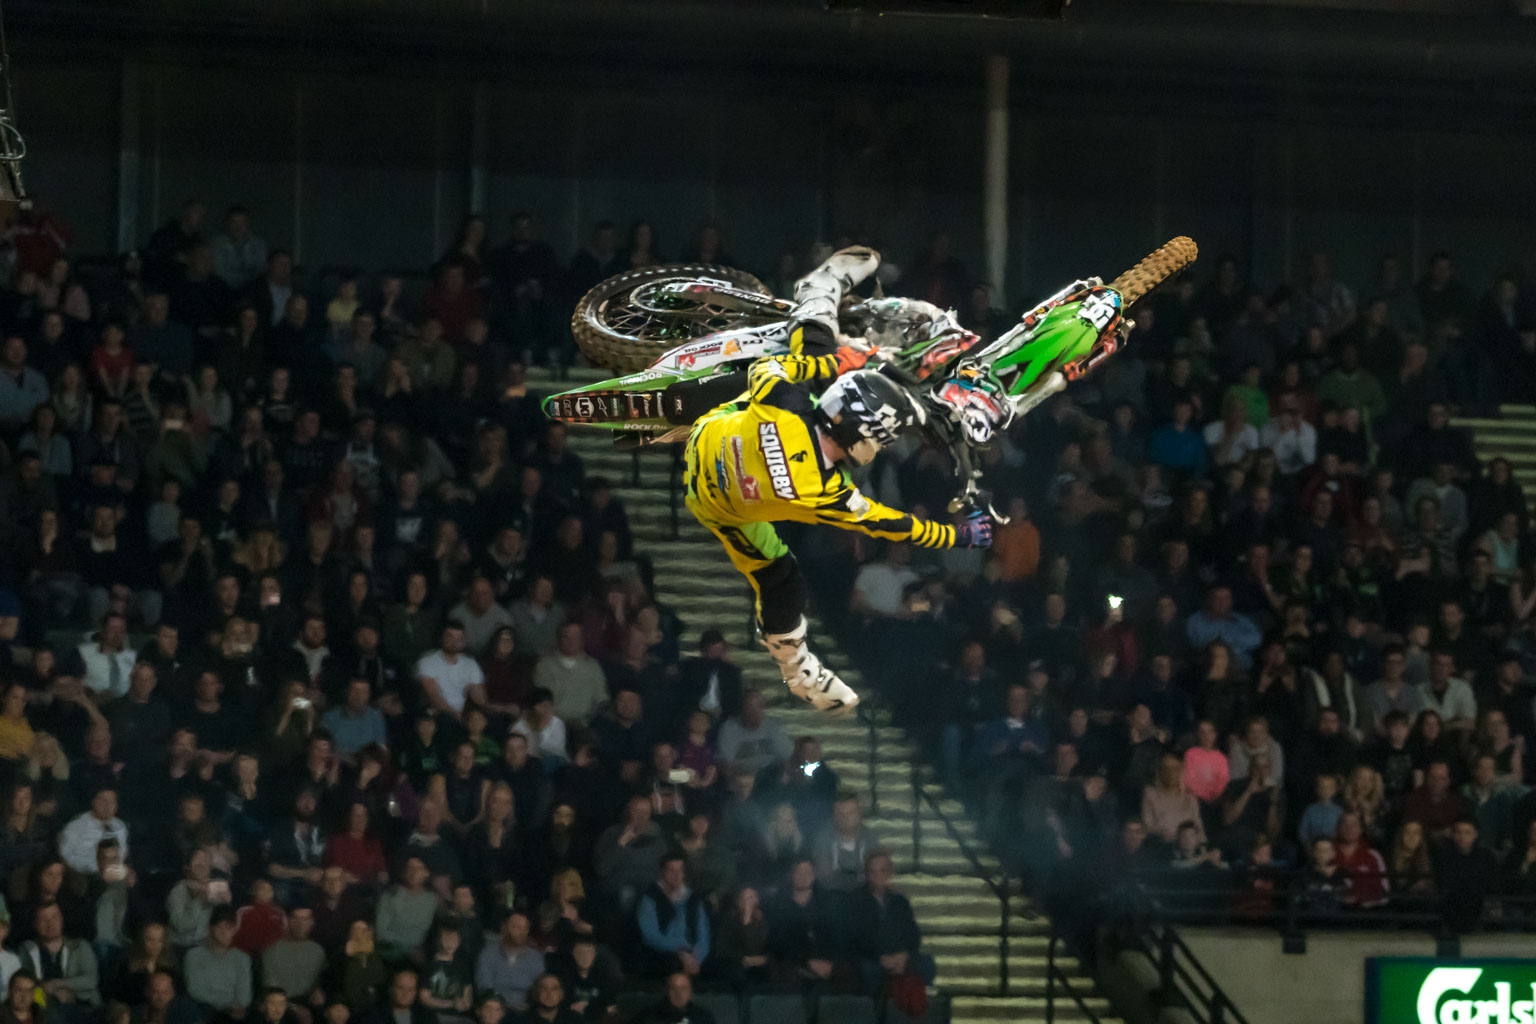 Jamie Squibb styles in the FMX